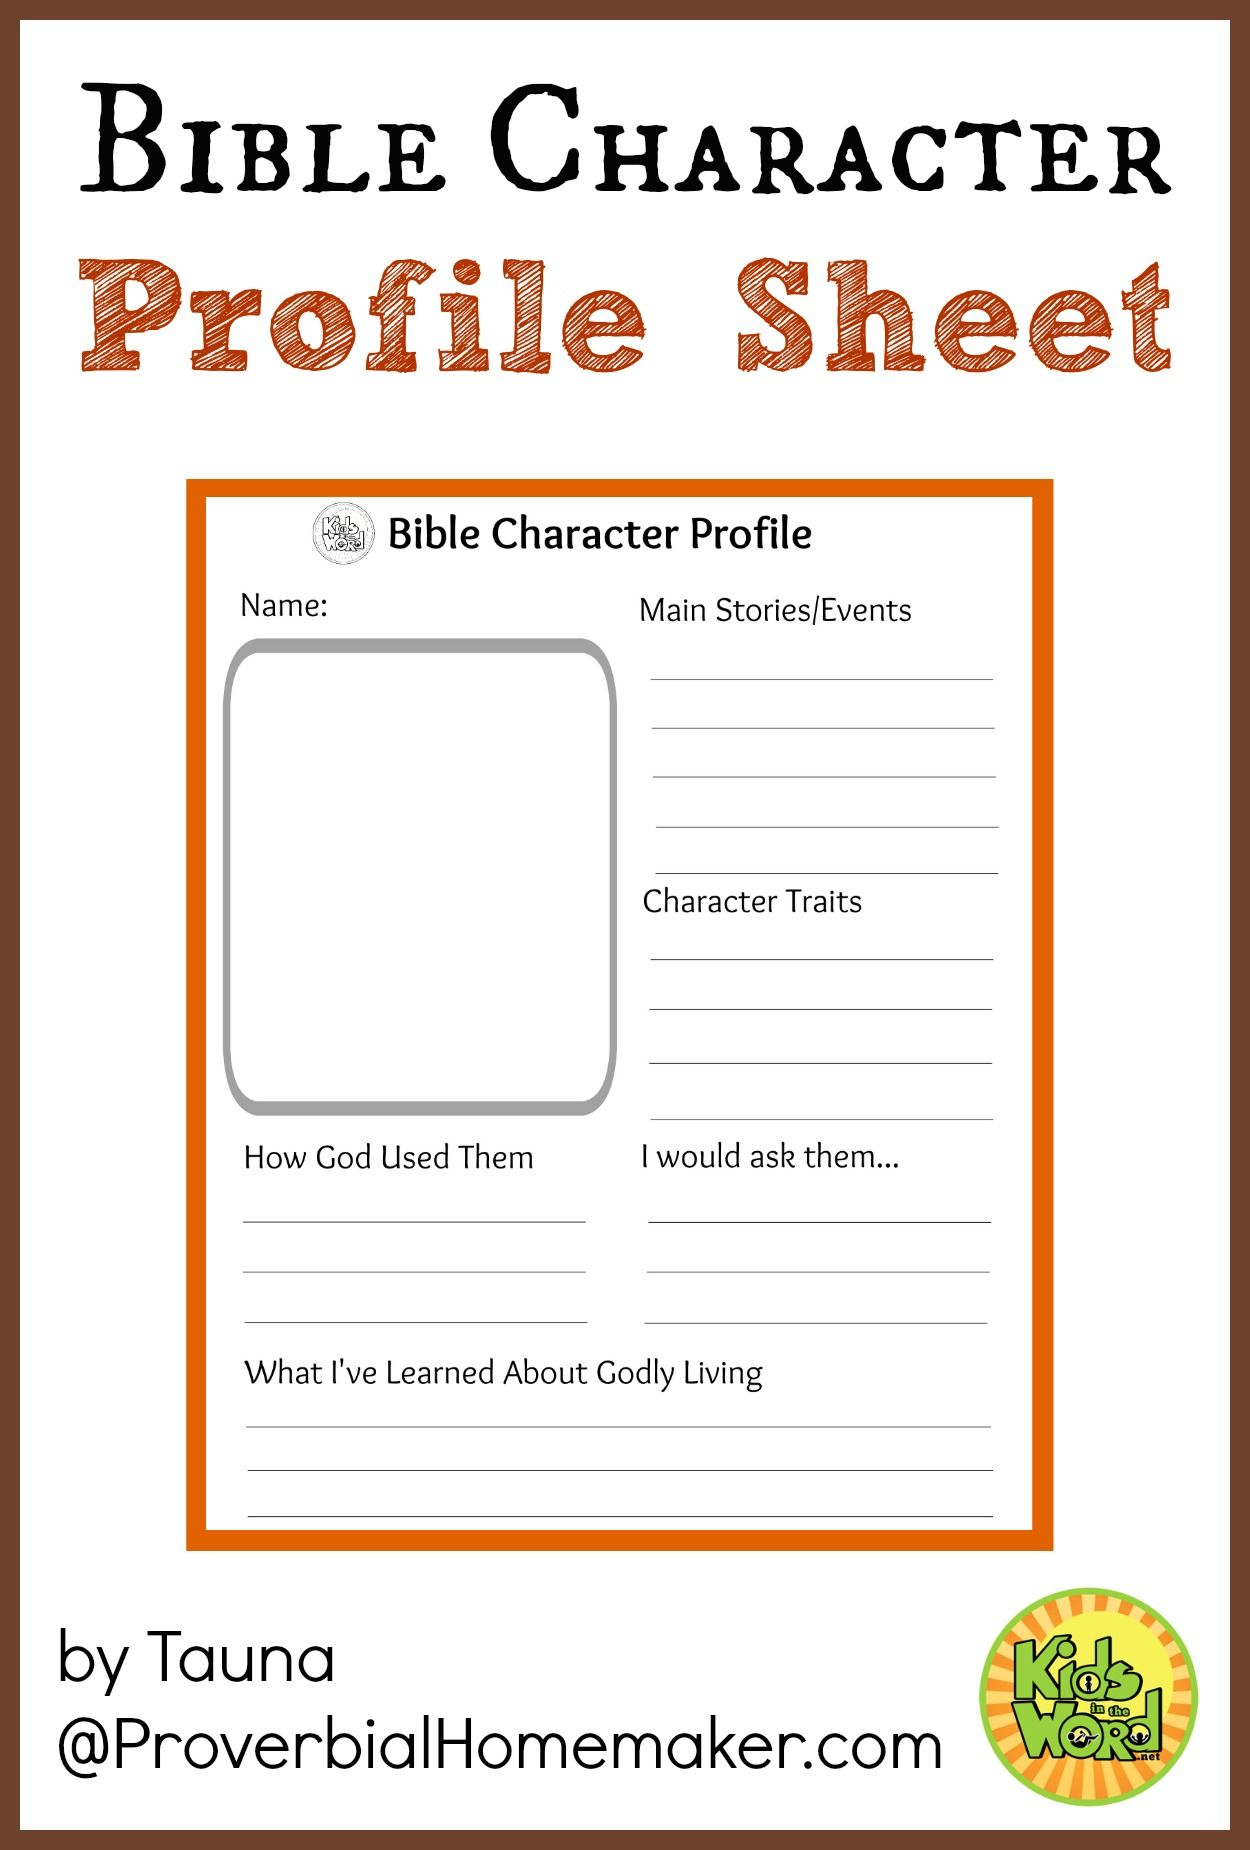 image about Free Printable Men's Bible Study Lessons titled Bible Temperament Profile Sheet Freebies for Questioning Young children